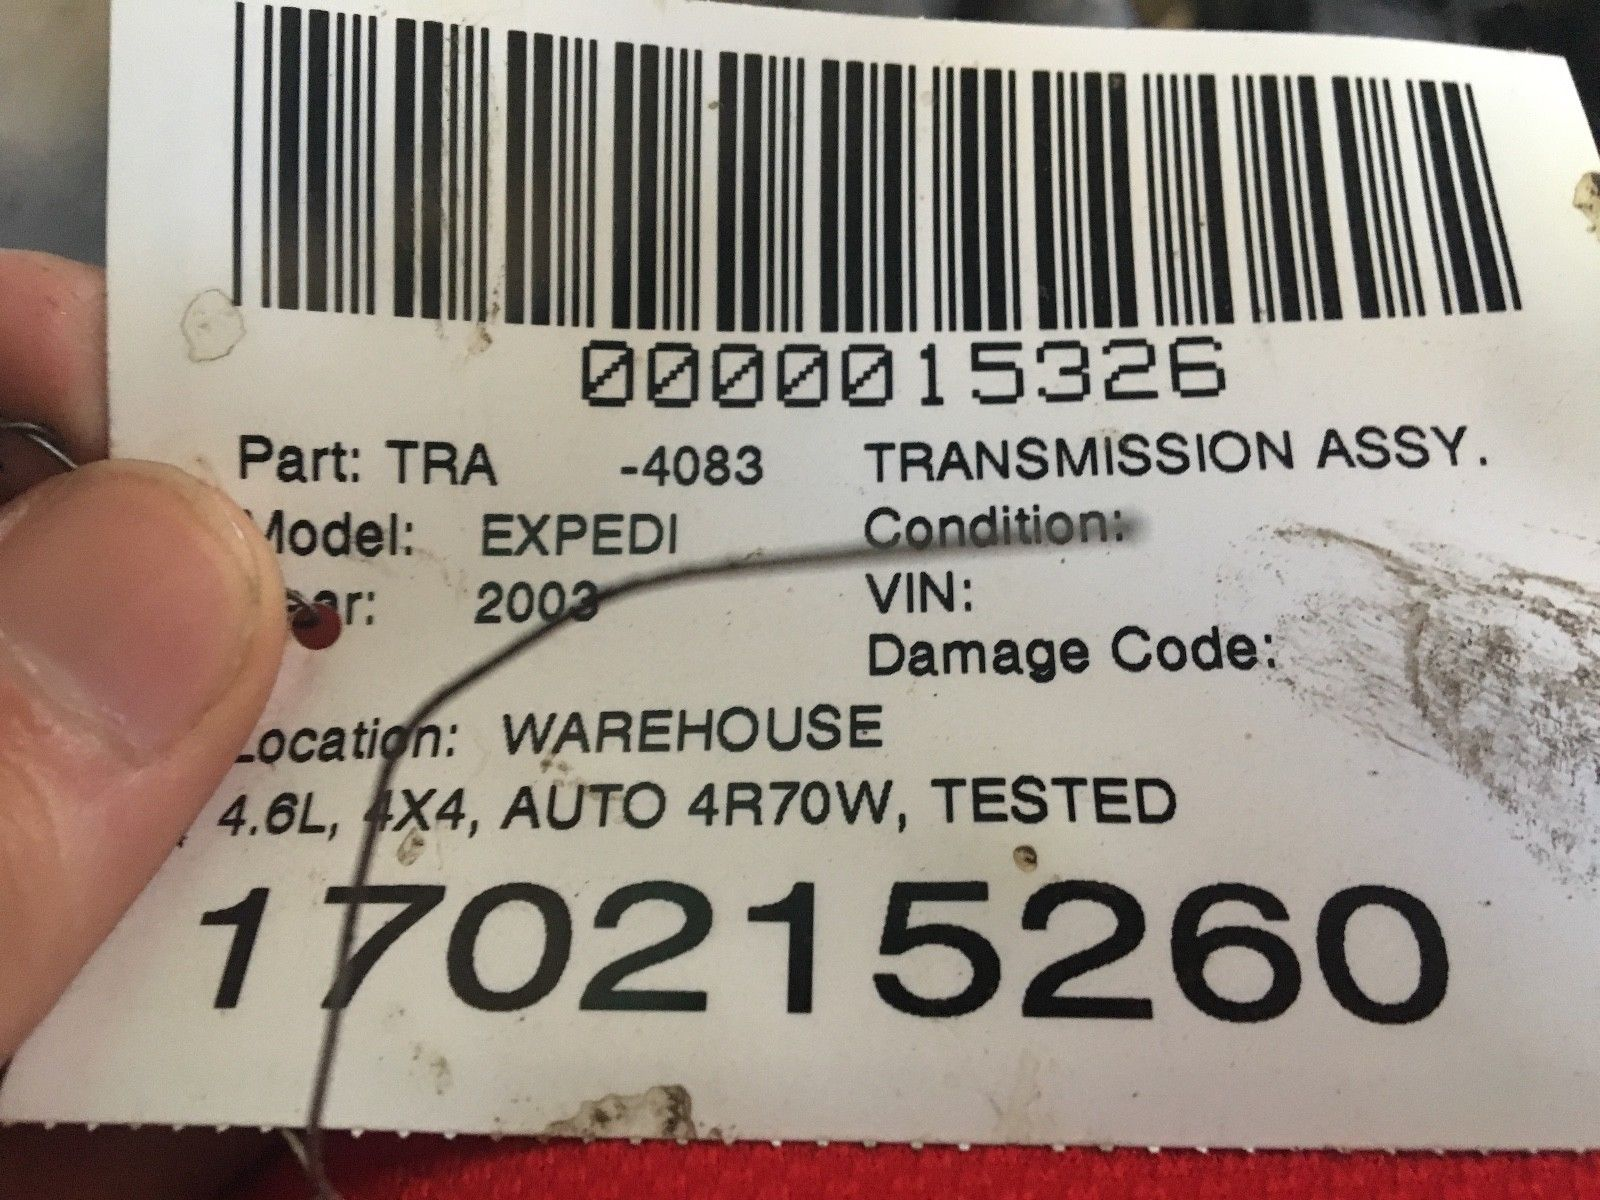 Transmission Assy. FORD EXPEDITION 03